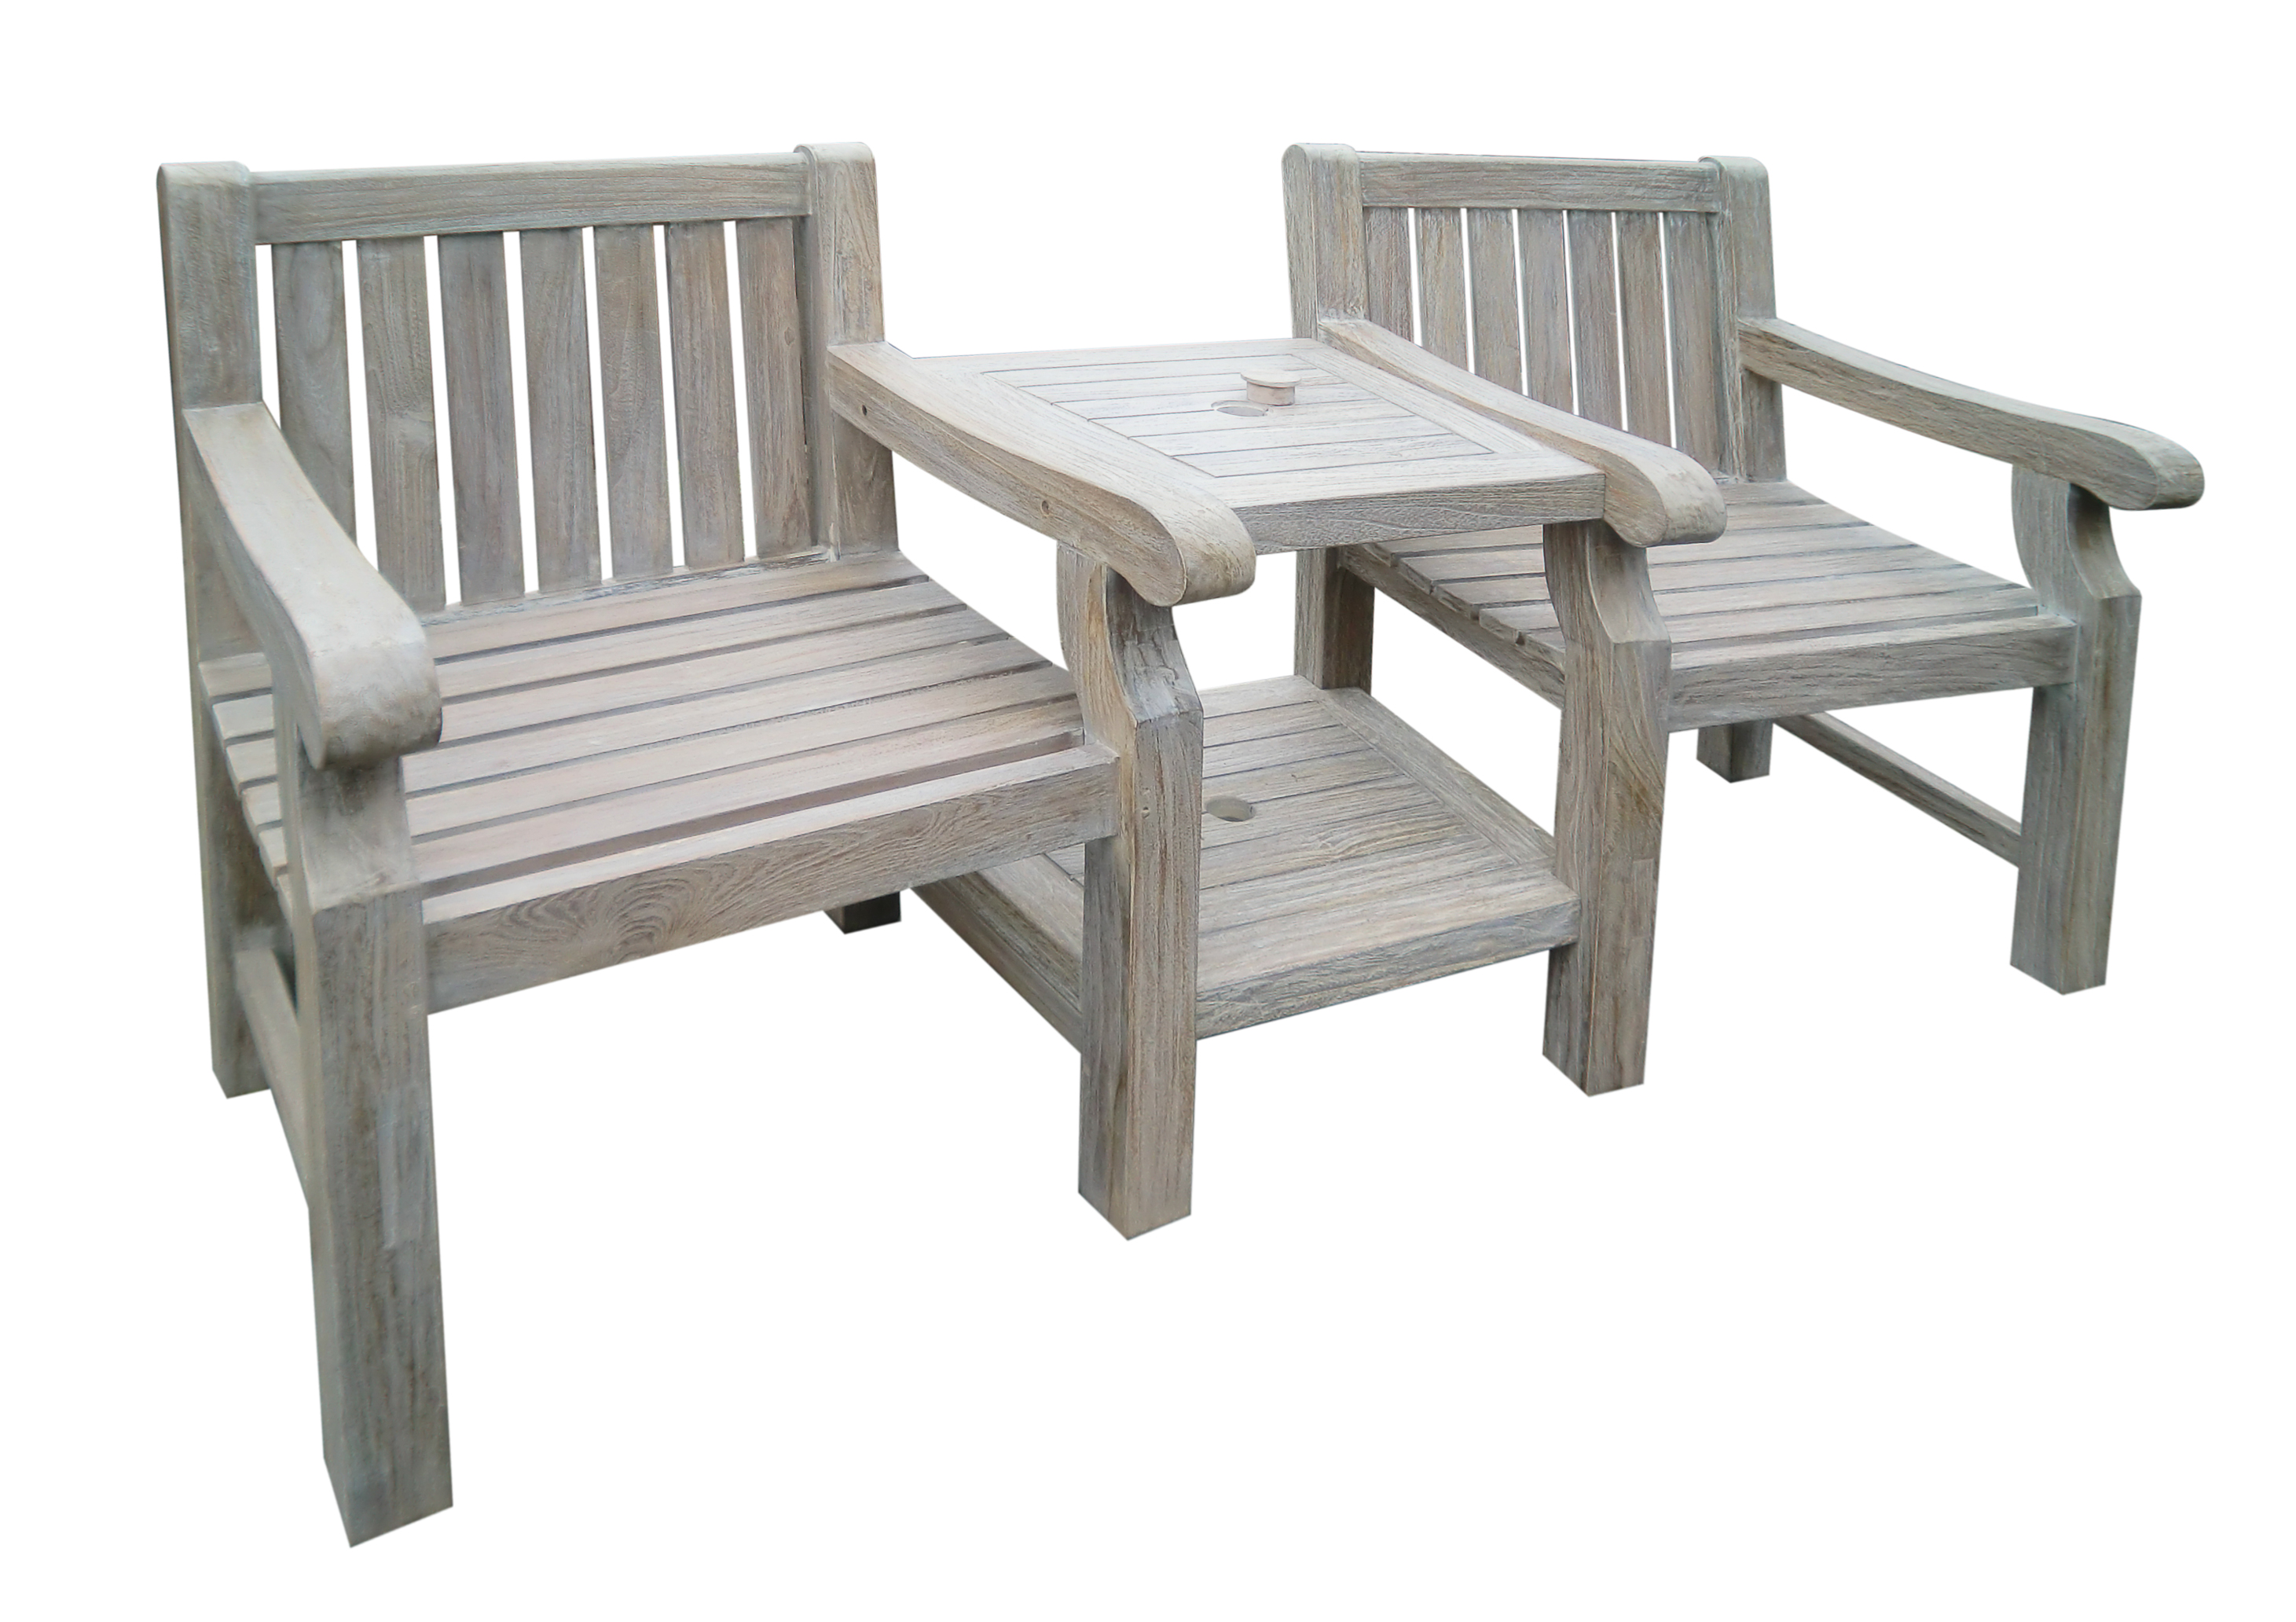 ... TEAK WOOD 2 SEAT LOVE SEA TCOMPANION DUO GARDEN BENCH PATIO FURNITURE